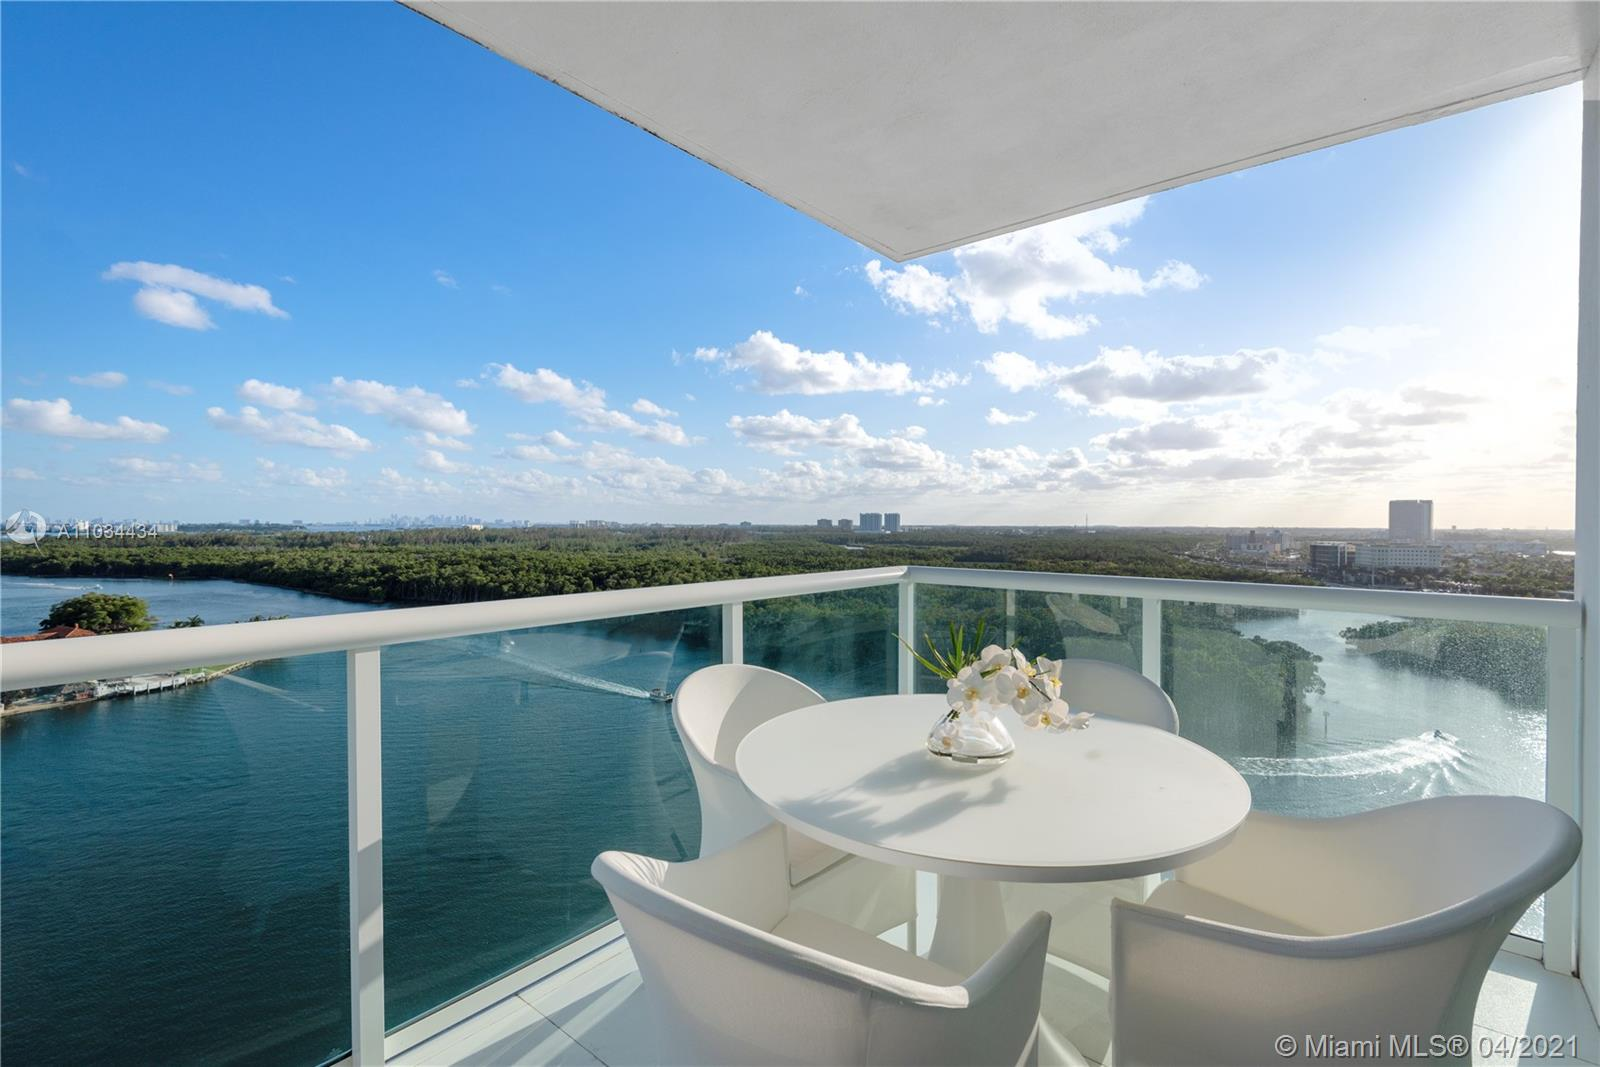 Gorgeous corner unit with Ocean and Intracoastal views featuring floor to ceiling glass windows, impressive views from every room, balcony with glass railings; 3 bedrooms, 3 bathrooms, open kitchen with European cabinetry, SS appliances, white porcelain floors throughout. Fully furnished-Professionally decorated by Artefacto Miami; Electric remote control shades; Washer/dryer in-unit; Soundproofing between units; 24 hour valet & concierge services. Many amenities: Infinity-edged pool, poolside cabanas; tennis court, fitness center with a full service spa, sauna, steam room and jacuzzi; yacht & beach club with in-house restaurant; private marina with dry/wet dock slips available, watersports activities center with boats, paddleboards, kayaks & jet skis.